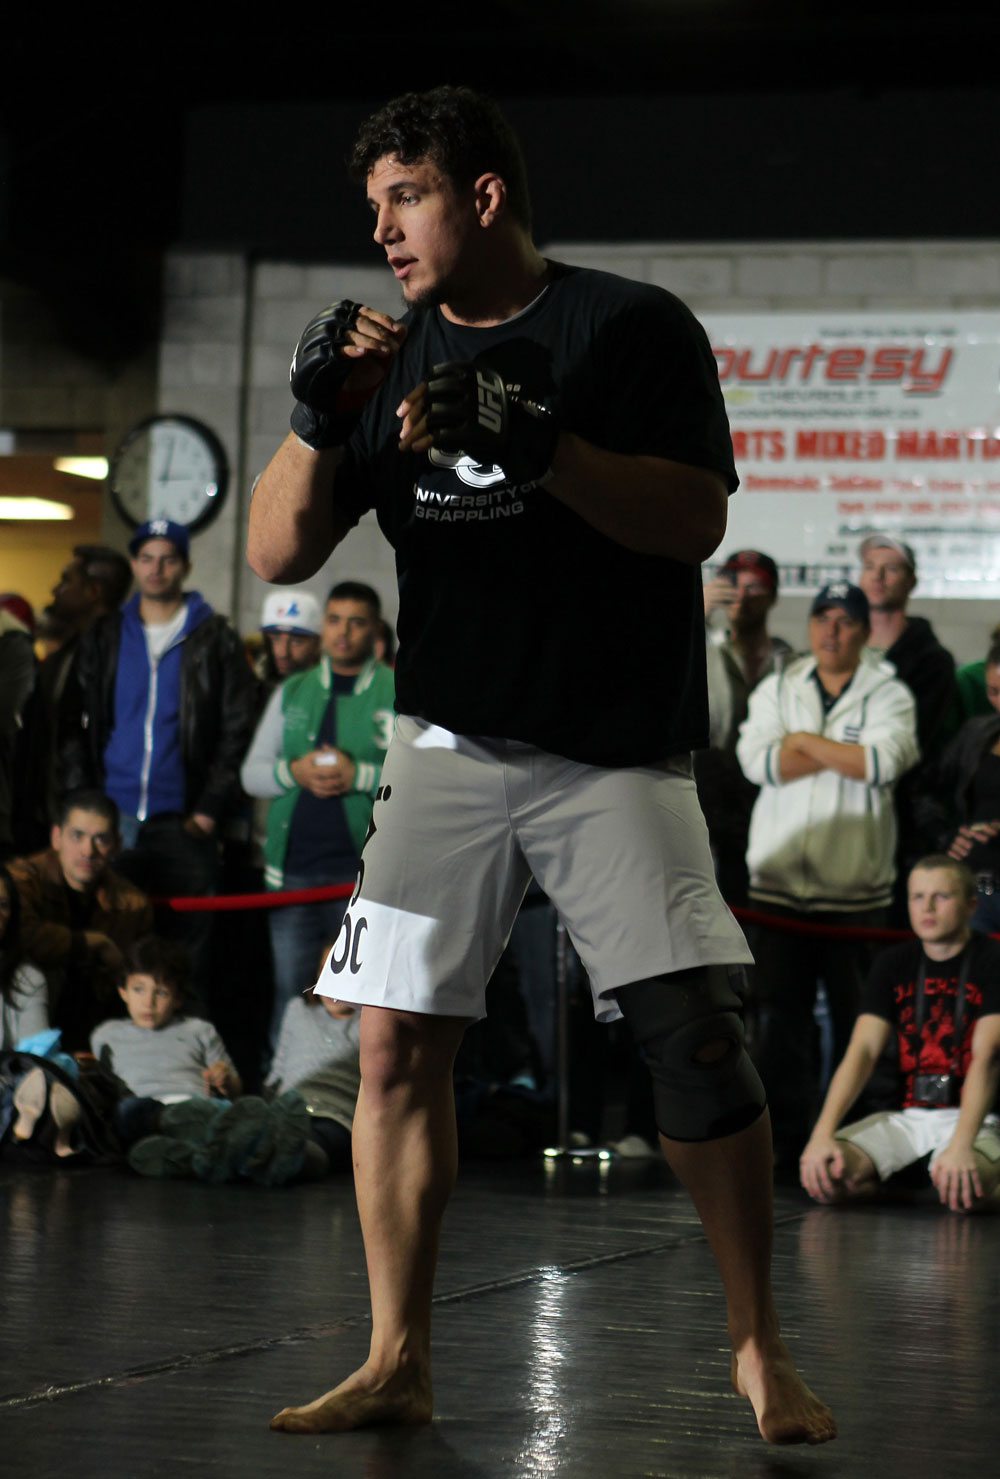 Frank Mir works out for the fans and media during the UFC 140 Open Workouts at the Xtreme Couture Gym on December 7, 2011 in Toronto, ON. (Photo by Josh Hedges/Zuffa LLC)